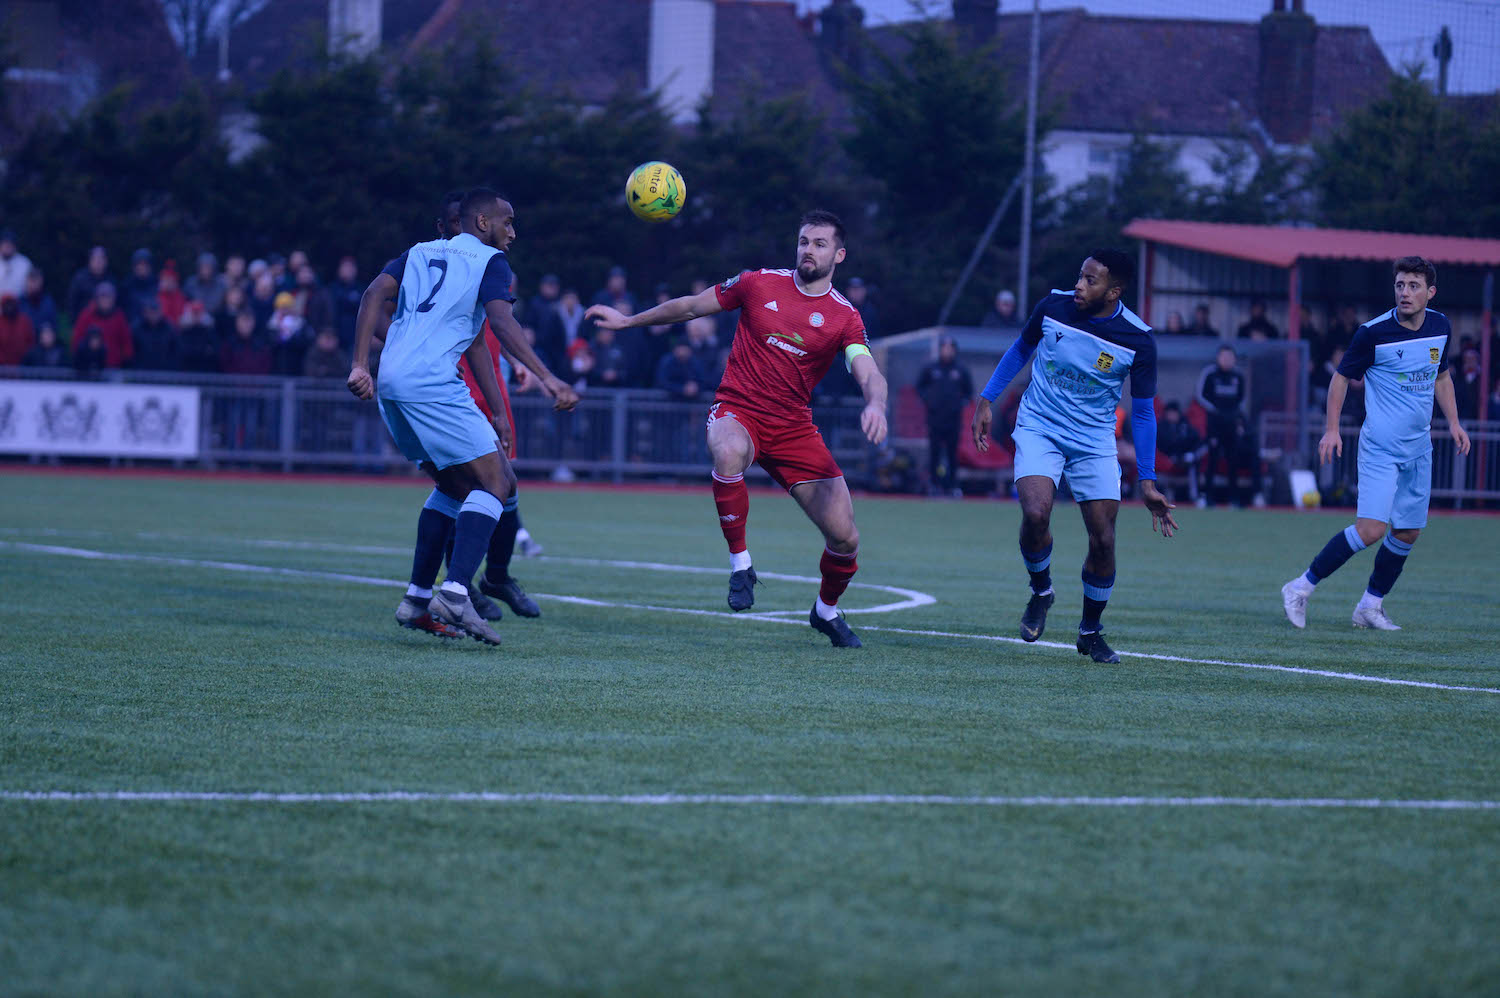 Read the full article - GALLERY | 19/20: Cheshunt [H] – League